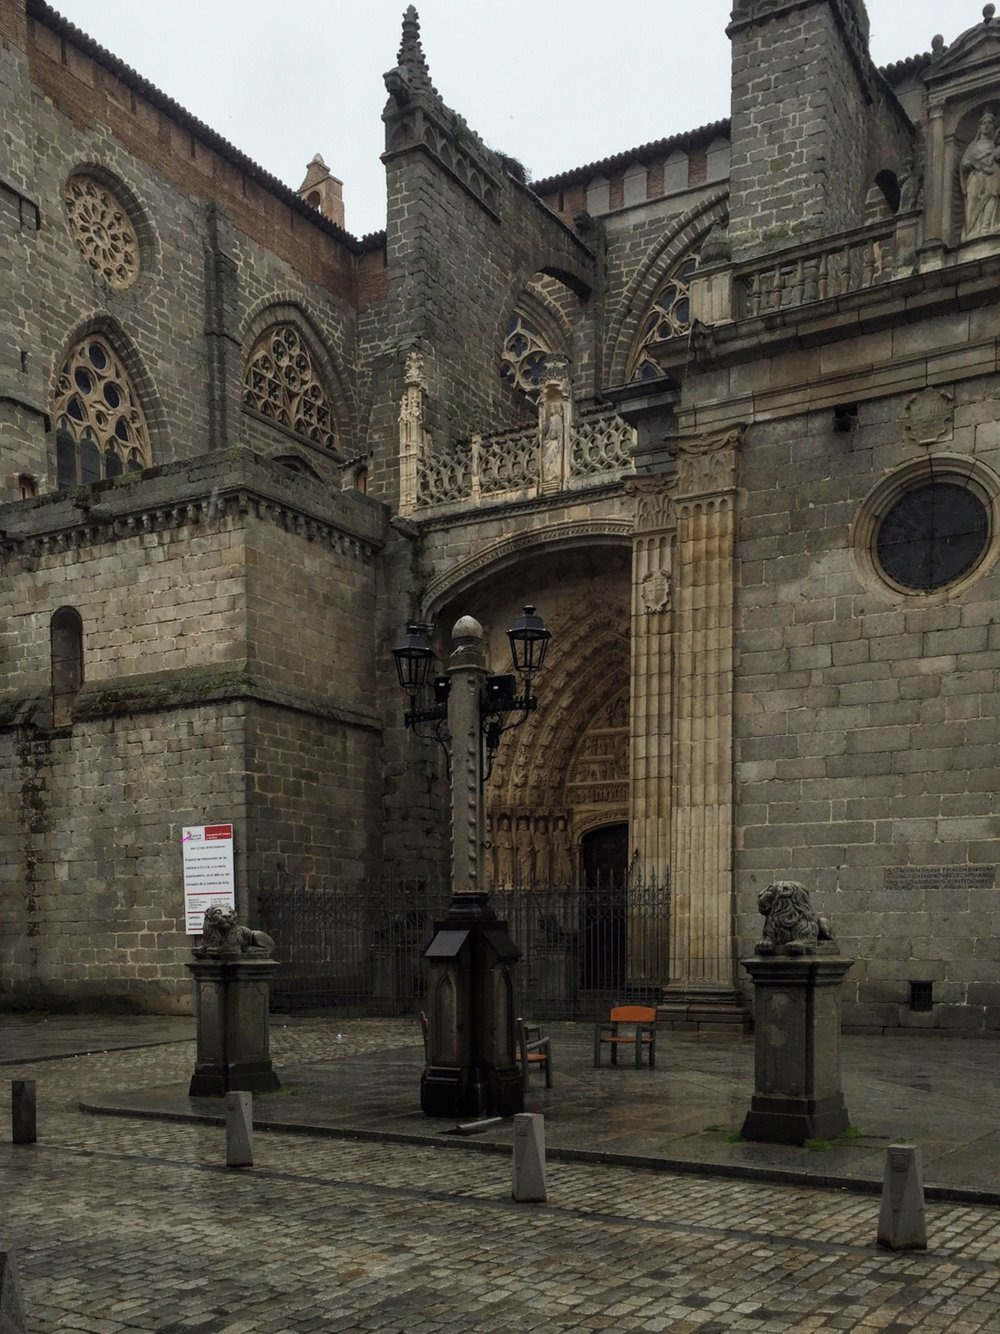 Catedral de Ávila has a combination of both Romanesque and Gothic characteristics